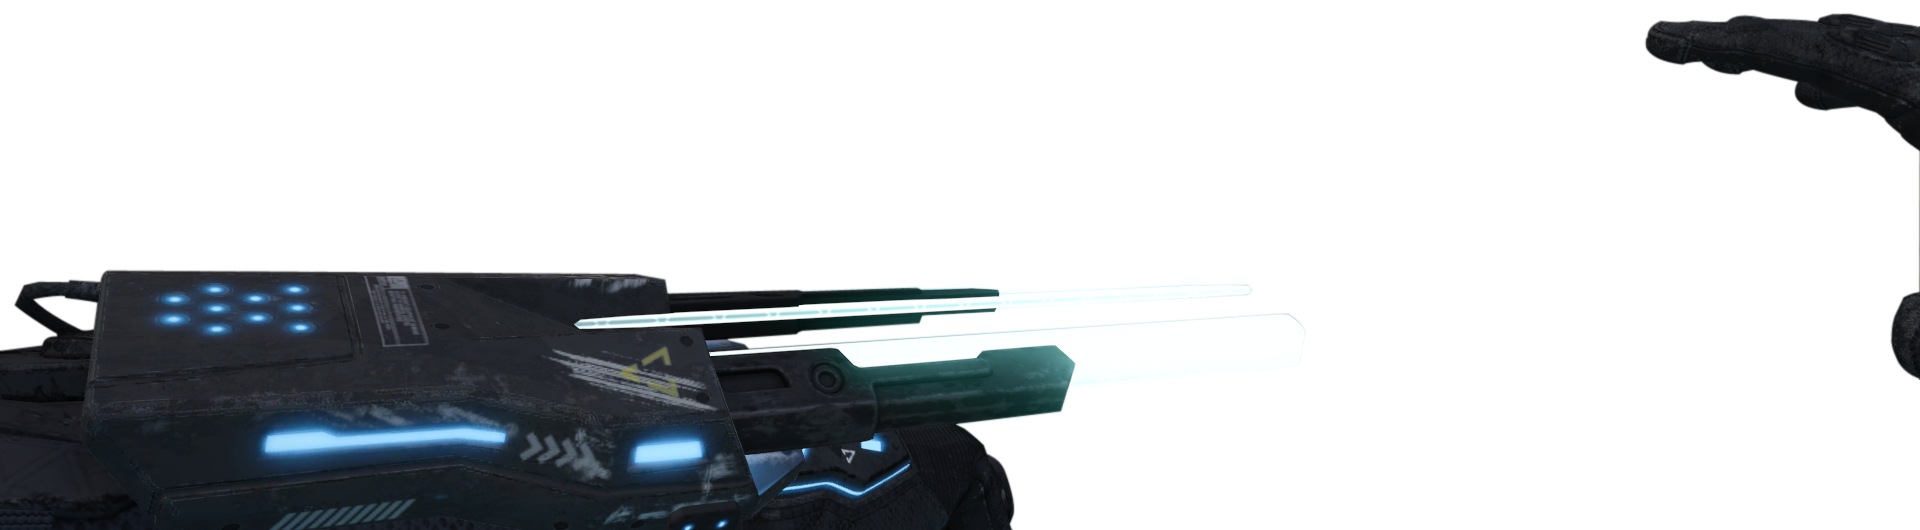 graphic transparent Image ripper first person. Bo3 transparent spectre